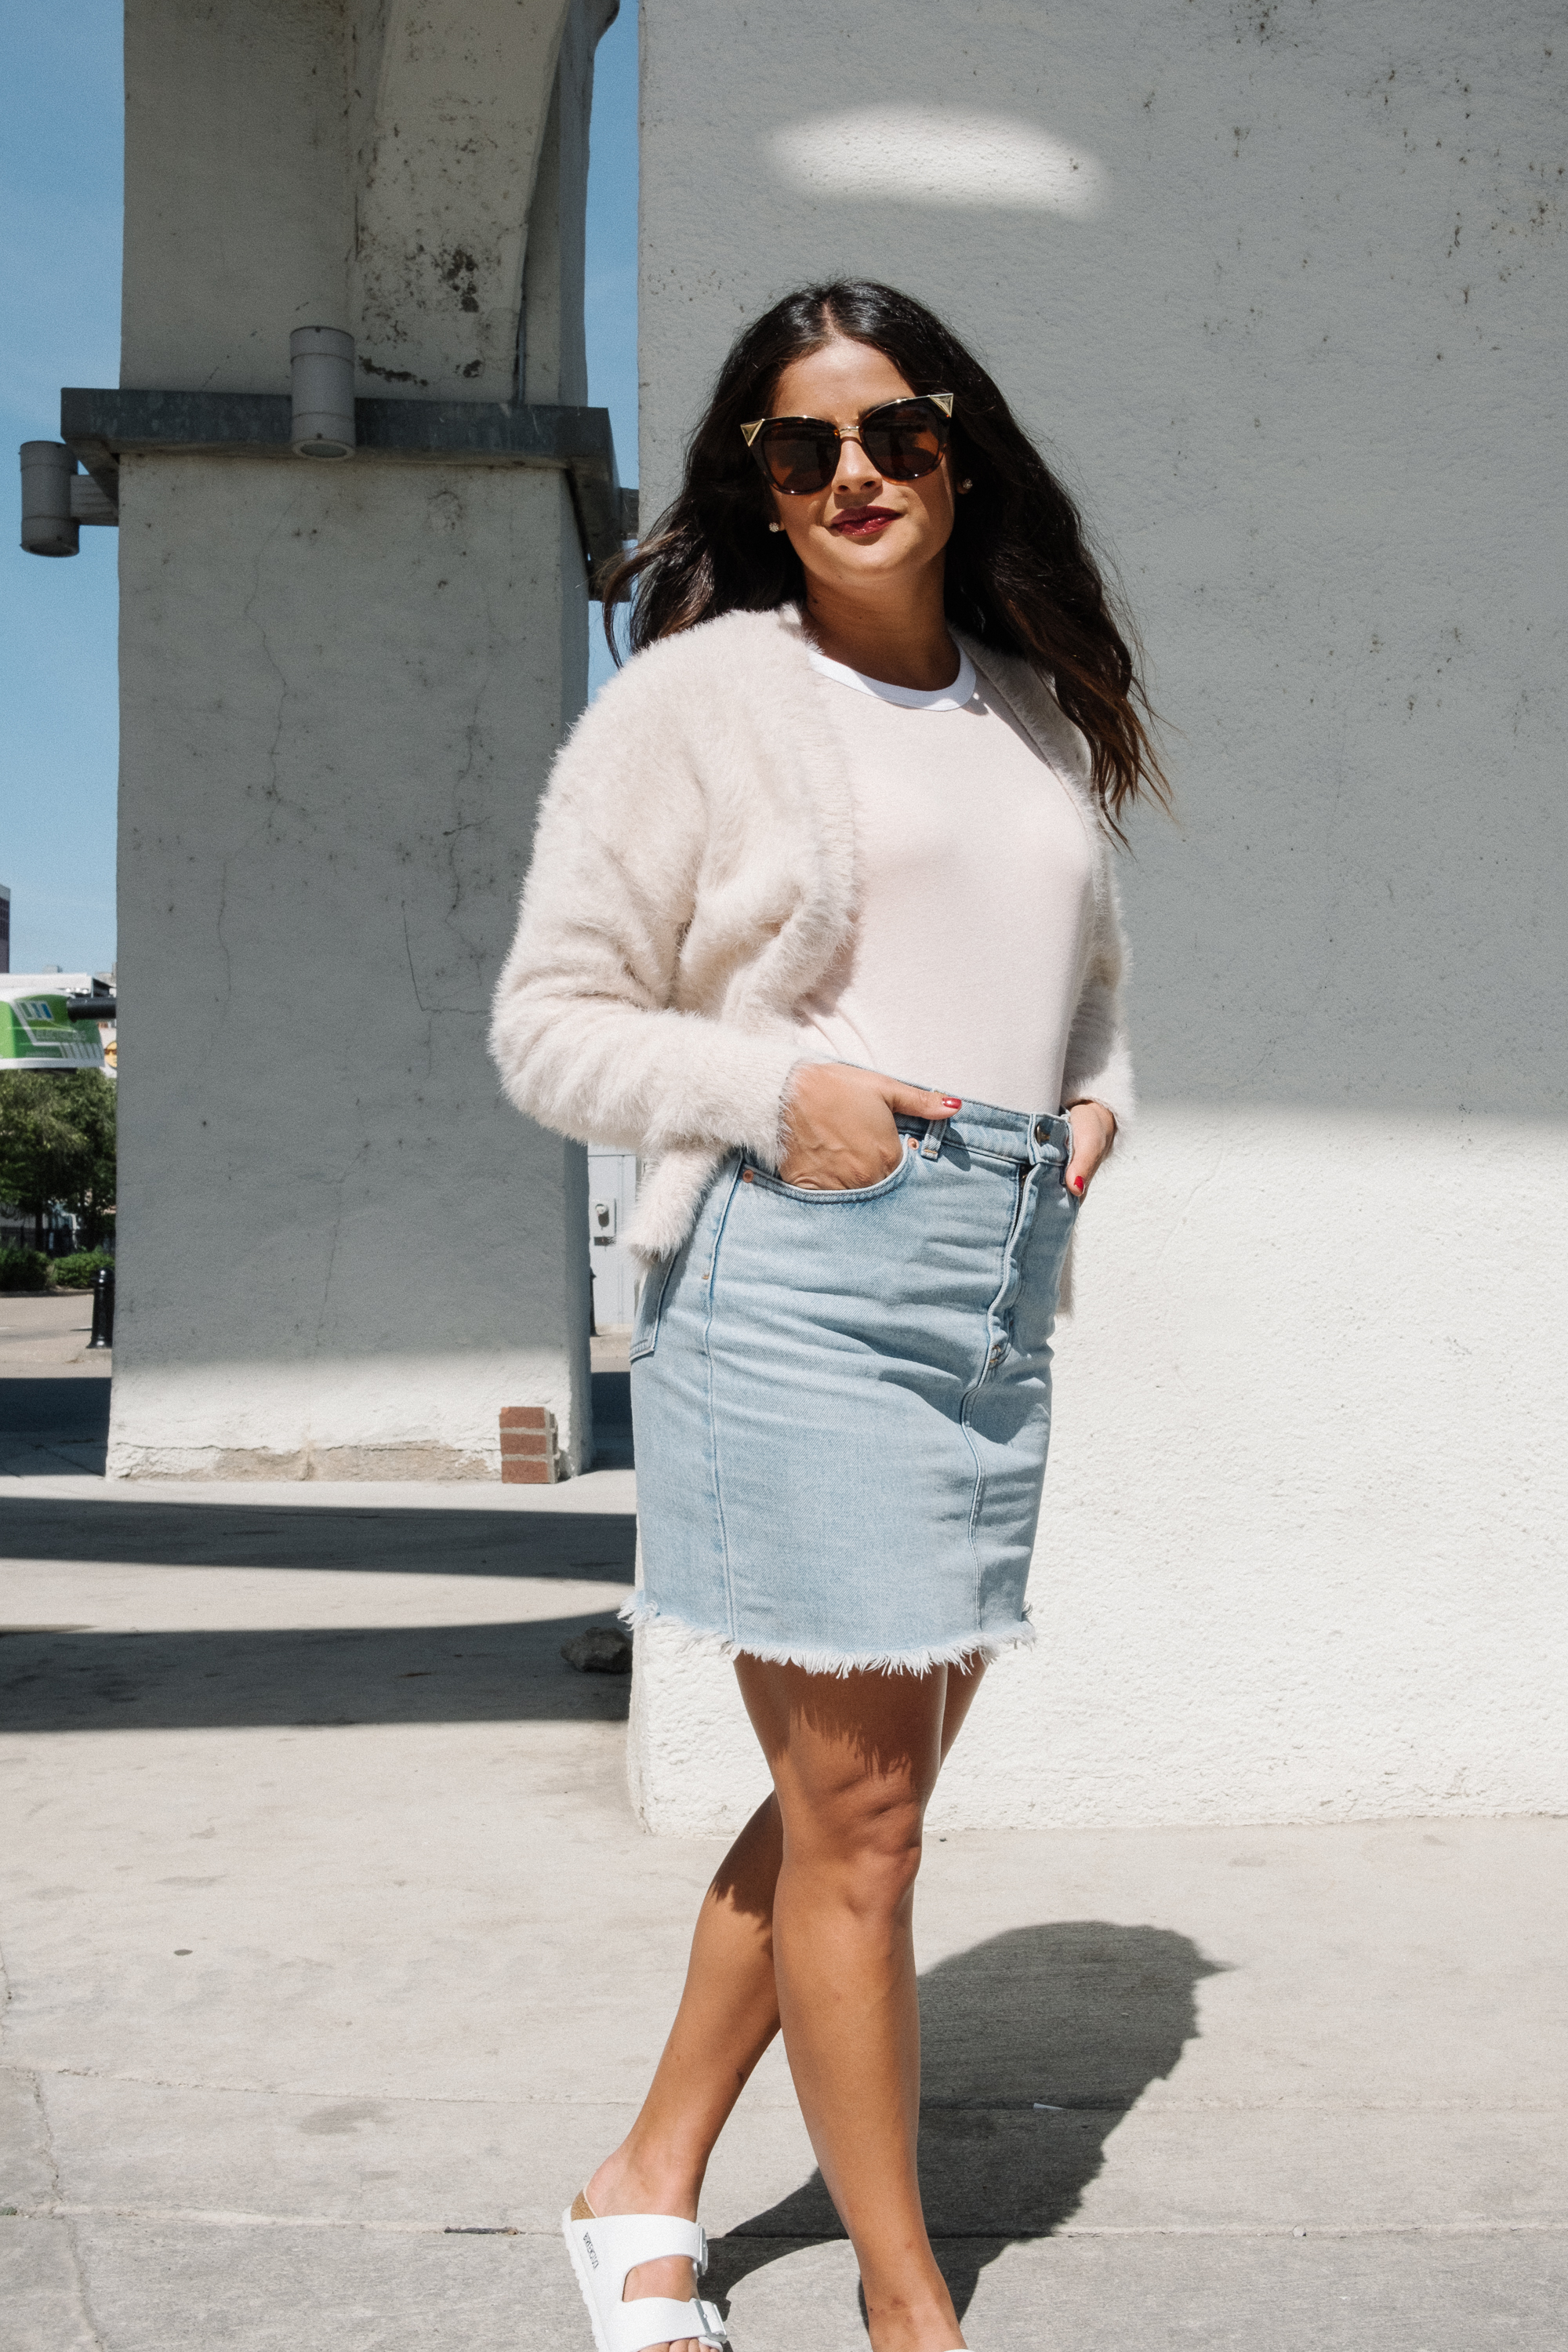 Priya the Blog, Nashville Style Blog, Fall transitional outfit, fuzzy cardigan, white Birkenstocks, pink ringer tee, The Ringer